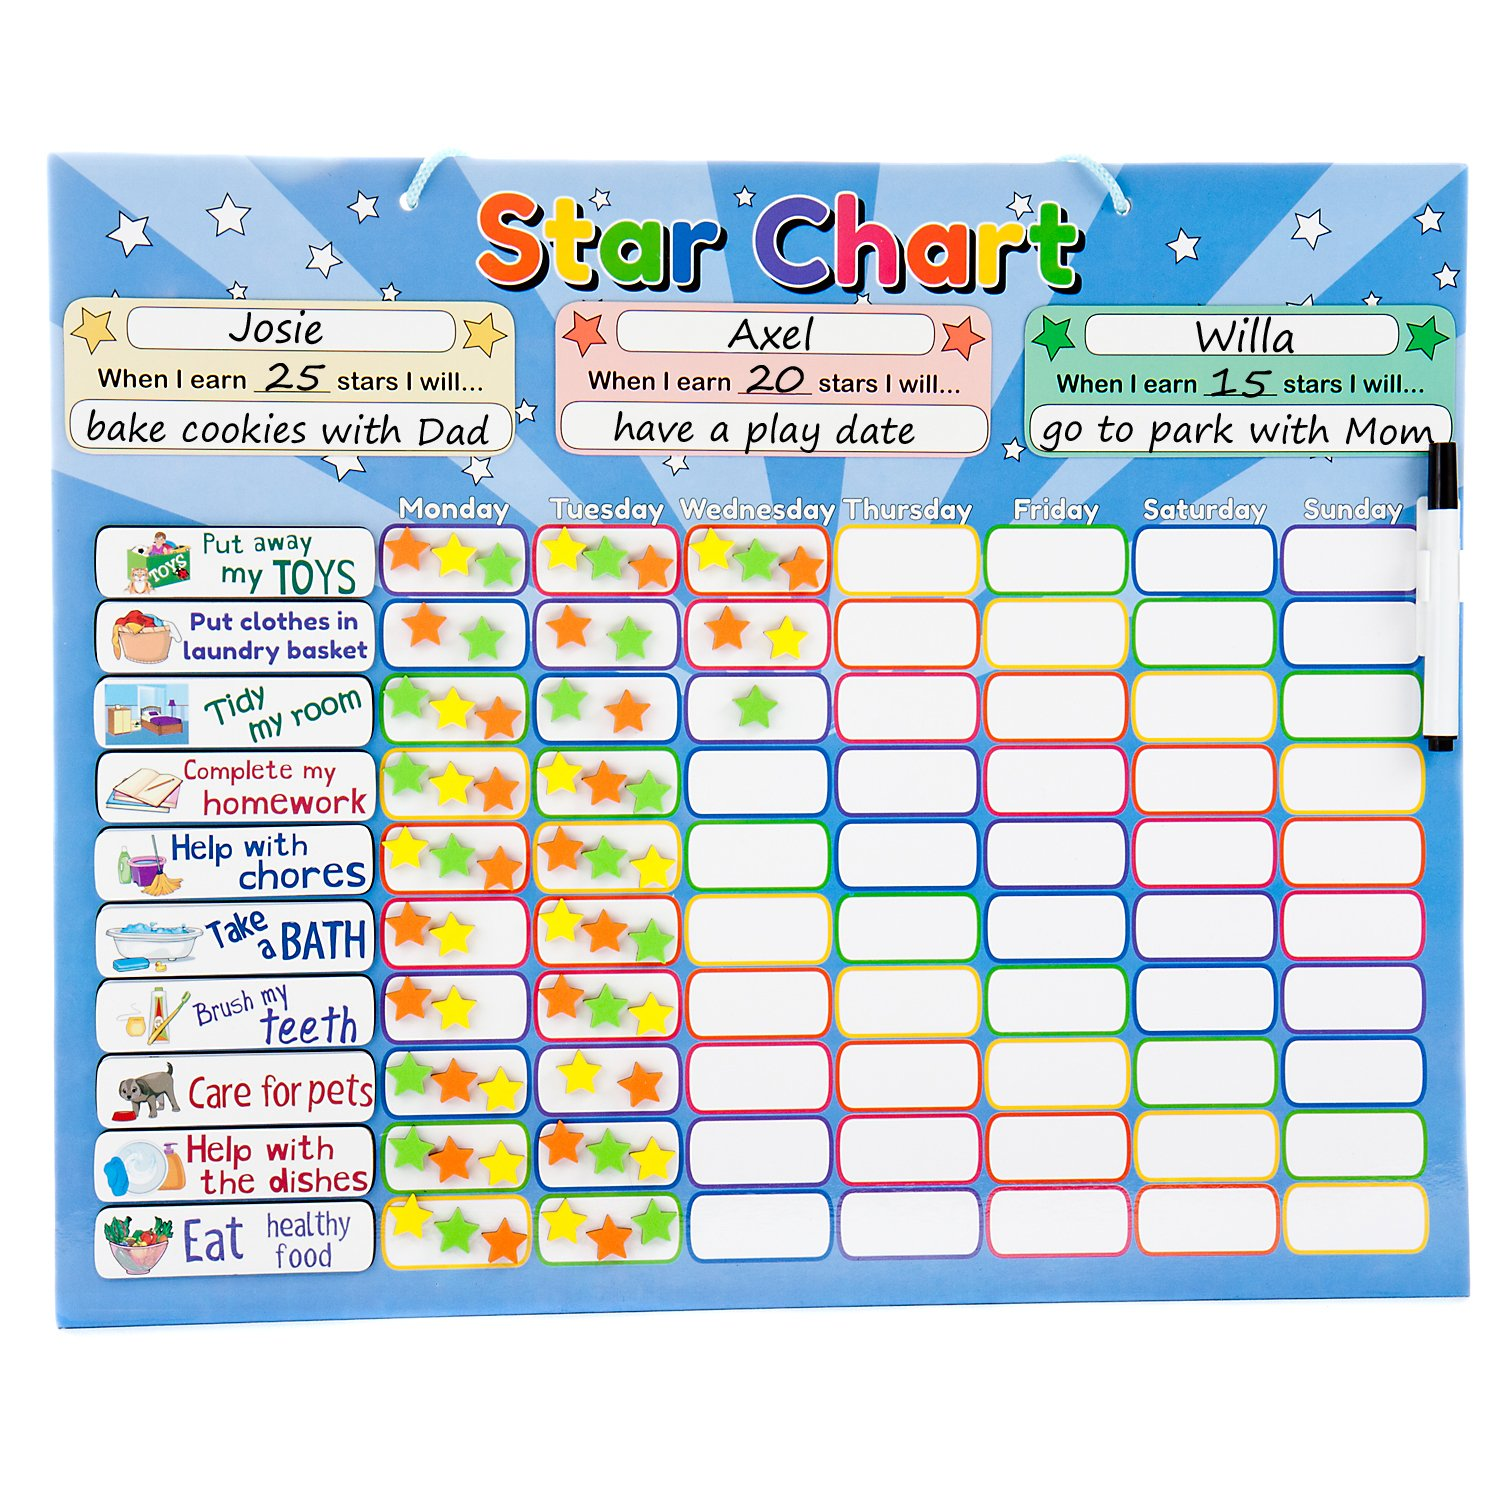 Roscoe Learning Responsibility Star Chart | Customize for 1-3 Kids | Magnetic Chore Reward System by Roscoe Learning (Image #1)